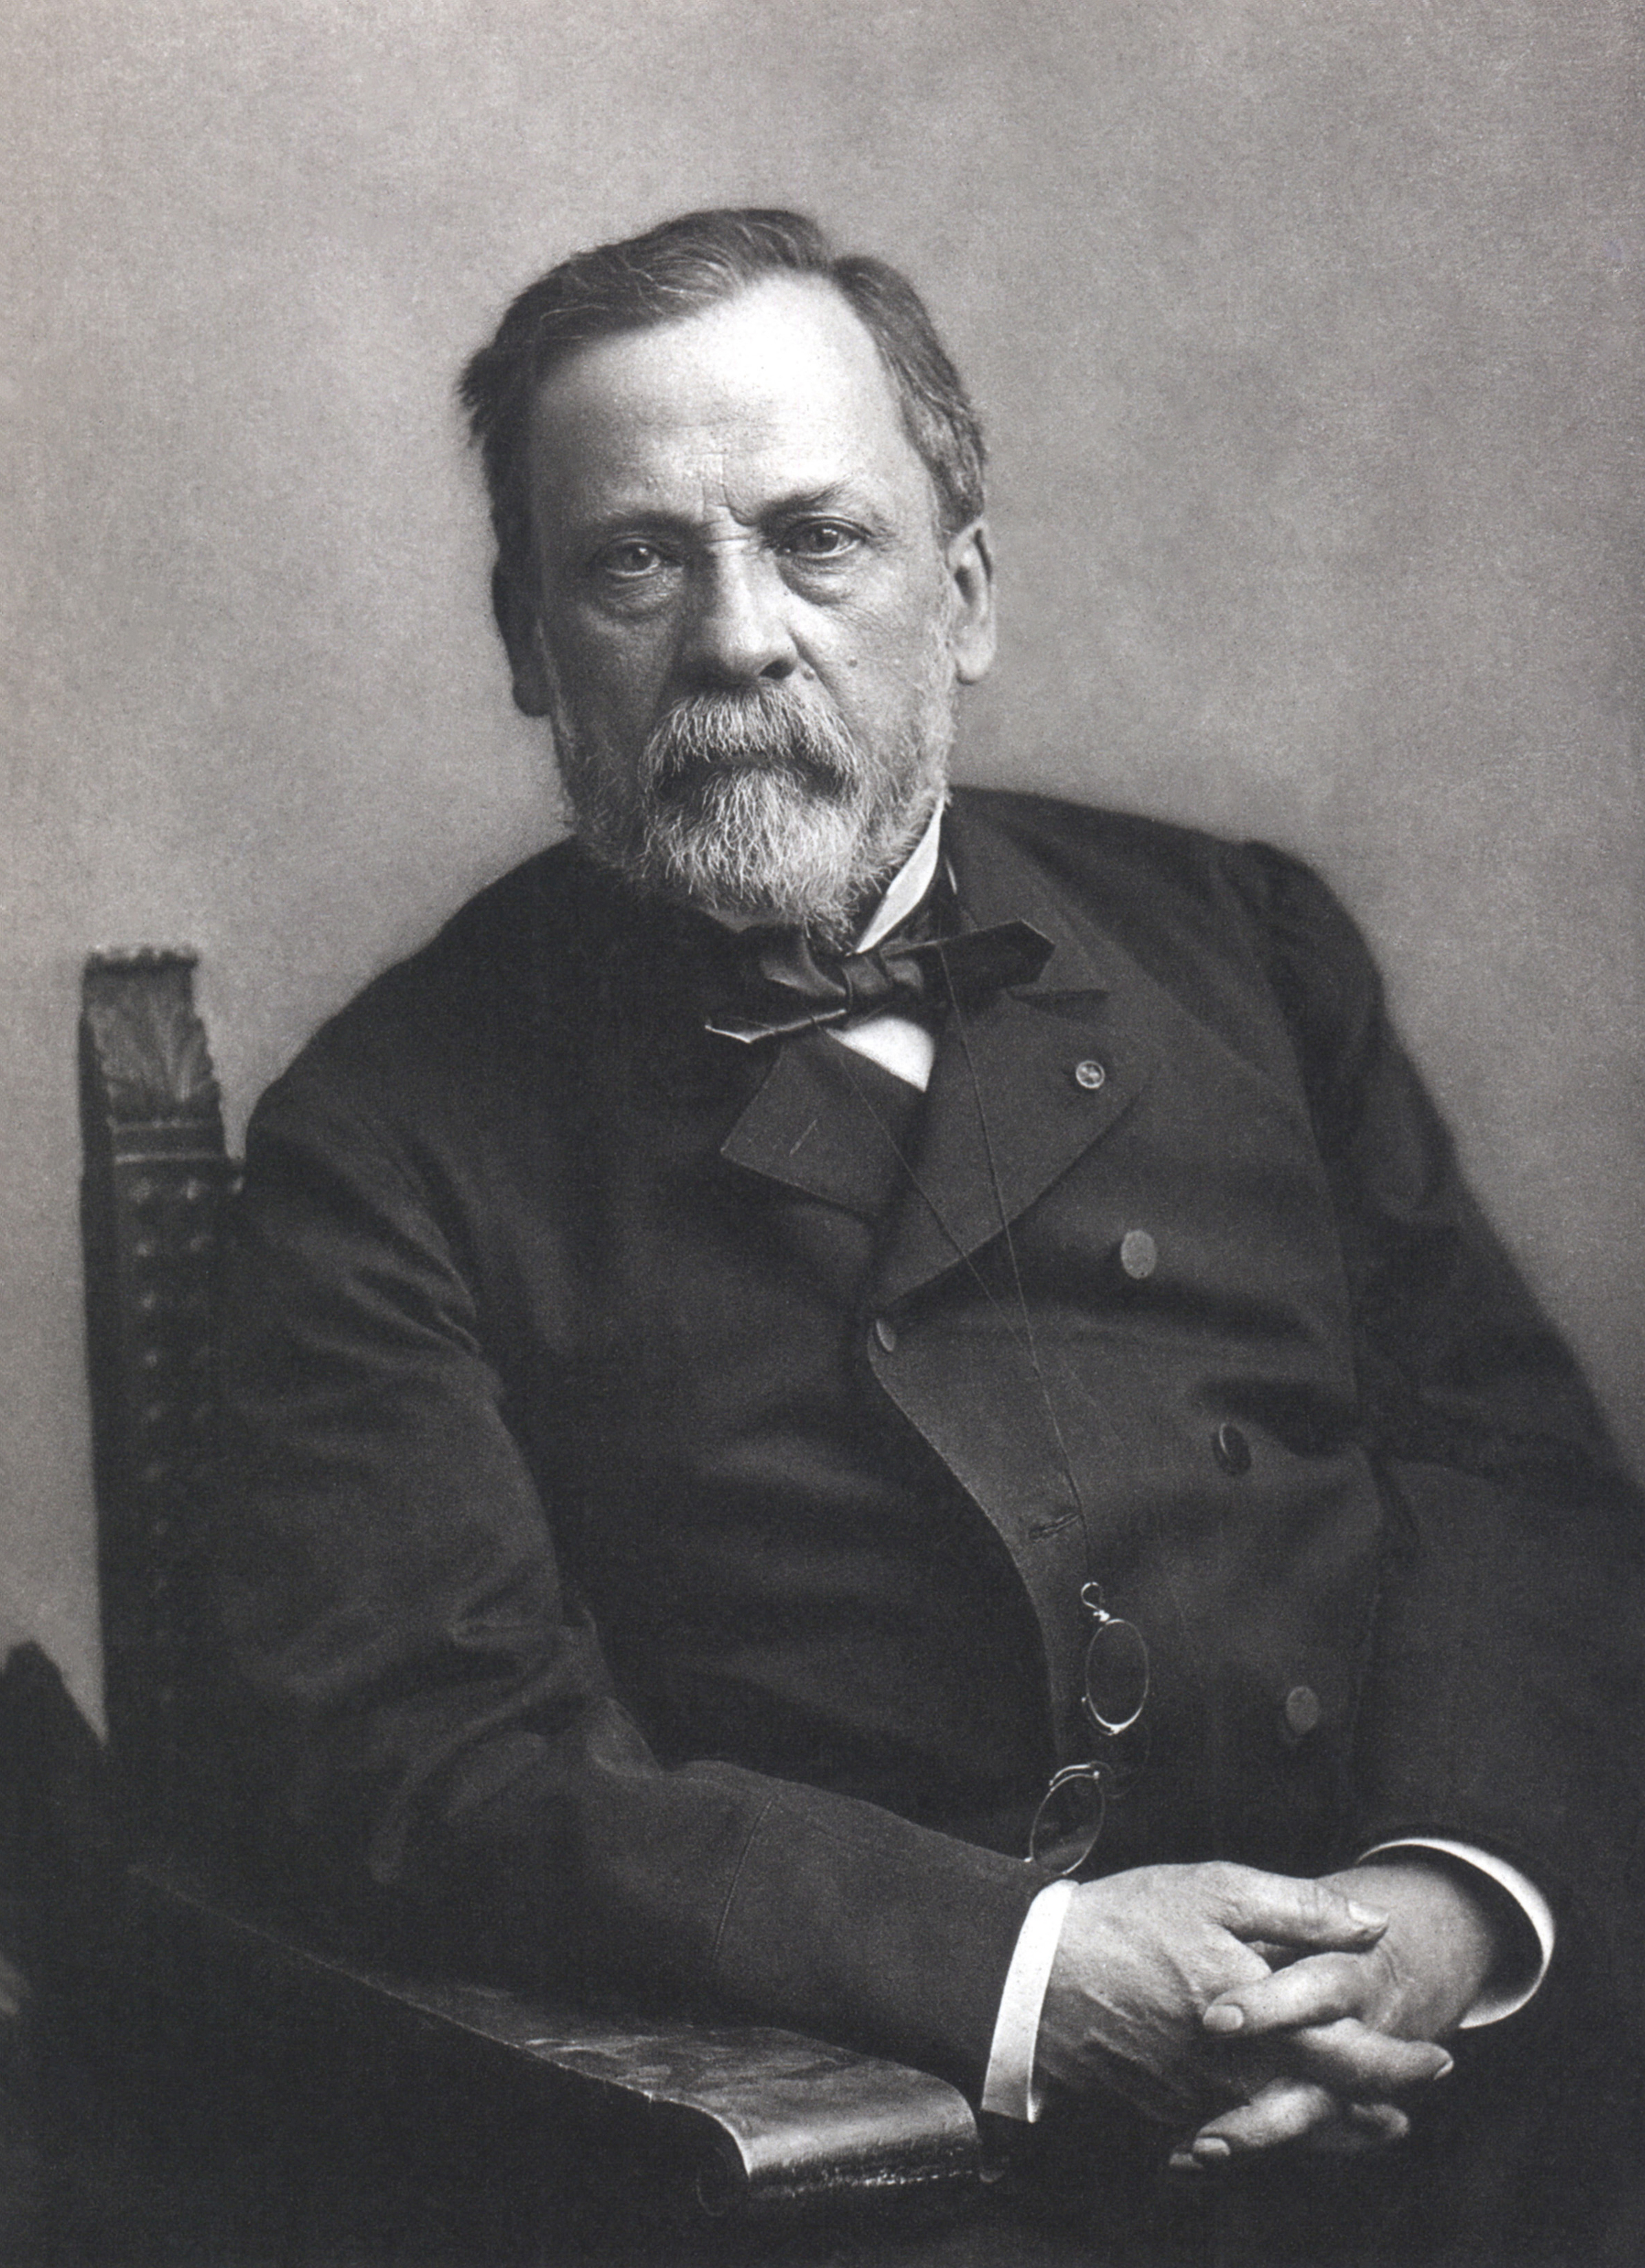 Louis_Pasteur,_foto_av_Paul_Nadar,_Crisco_edit